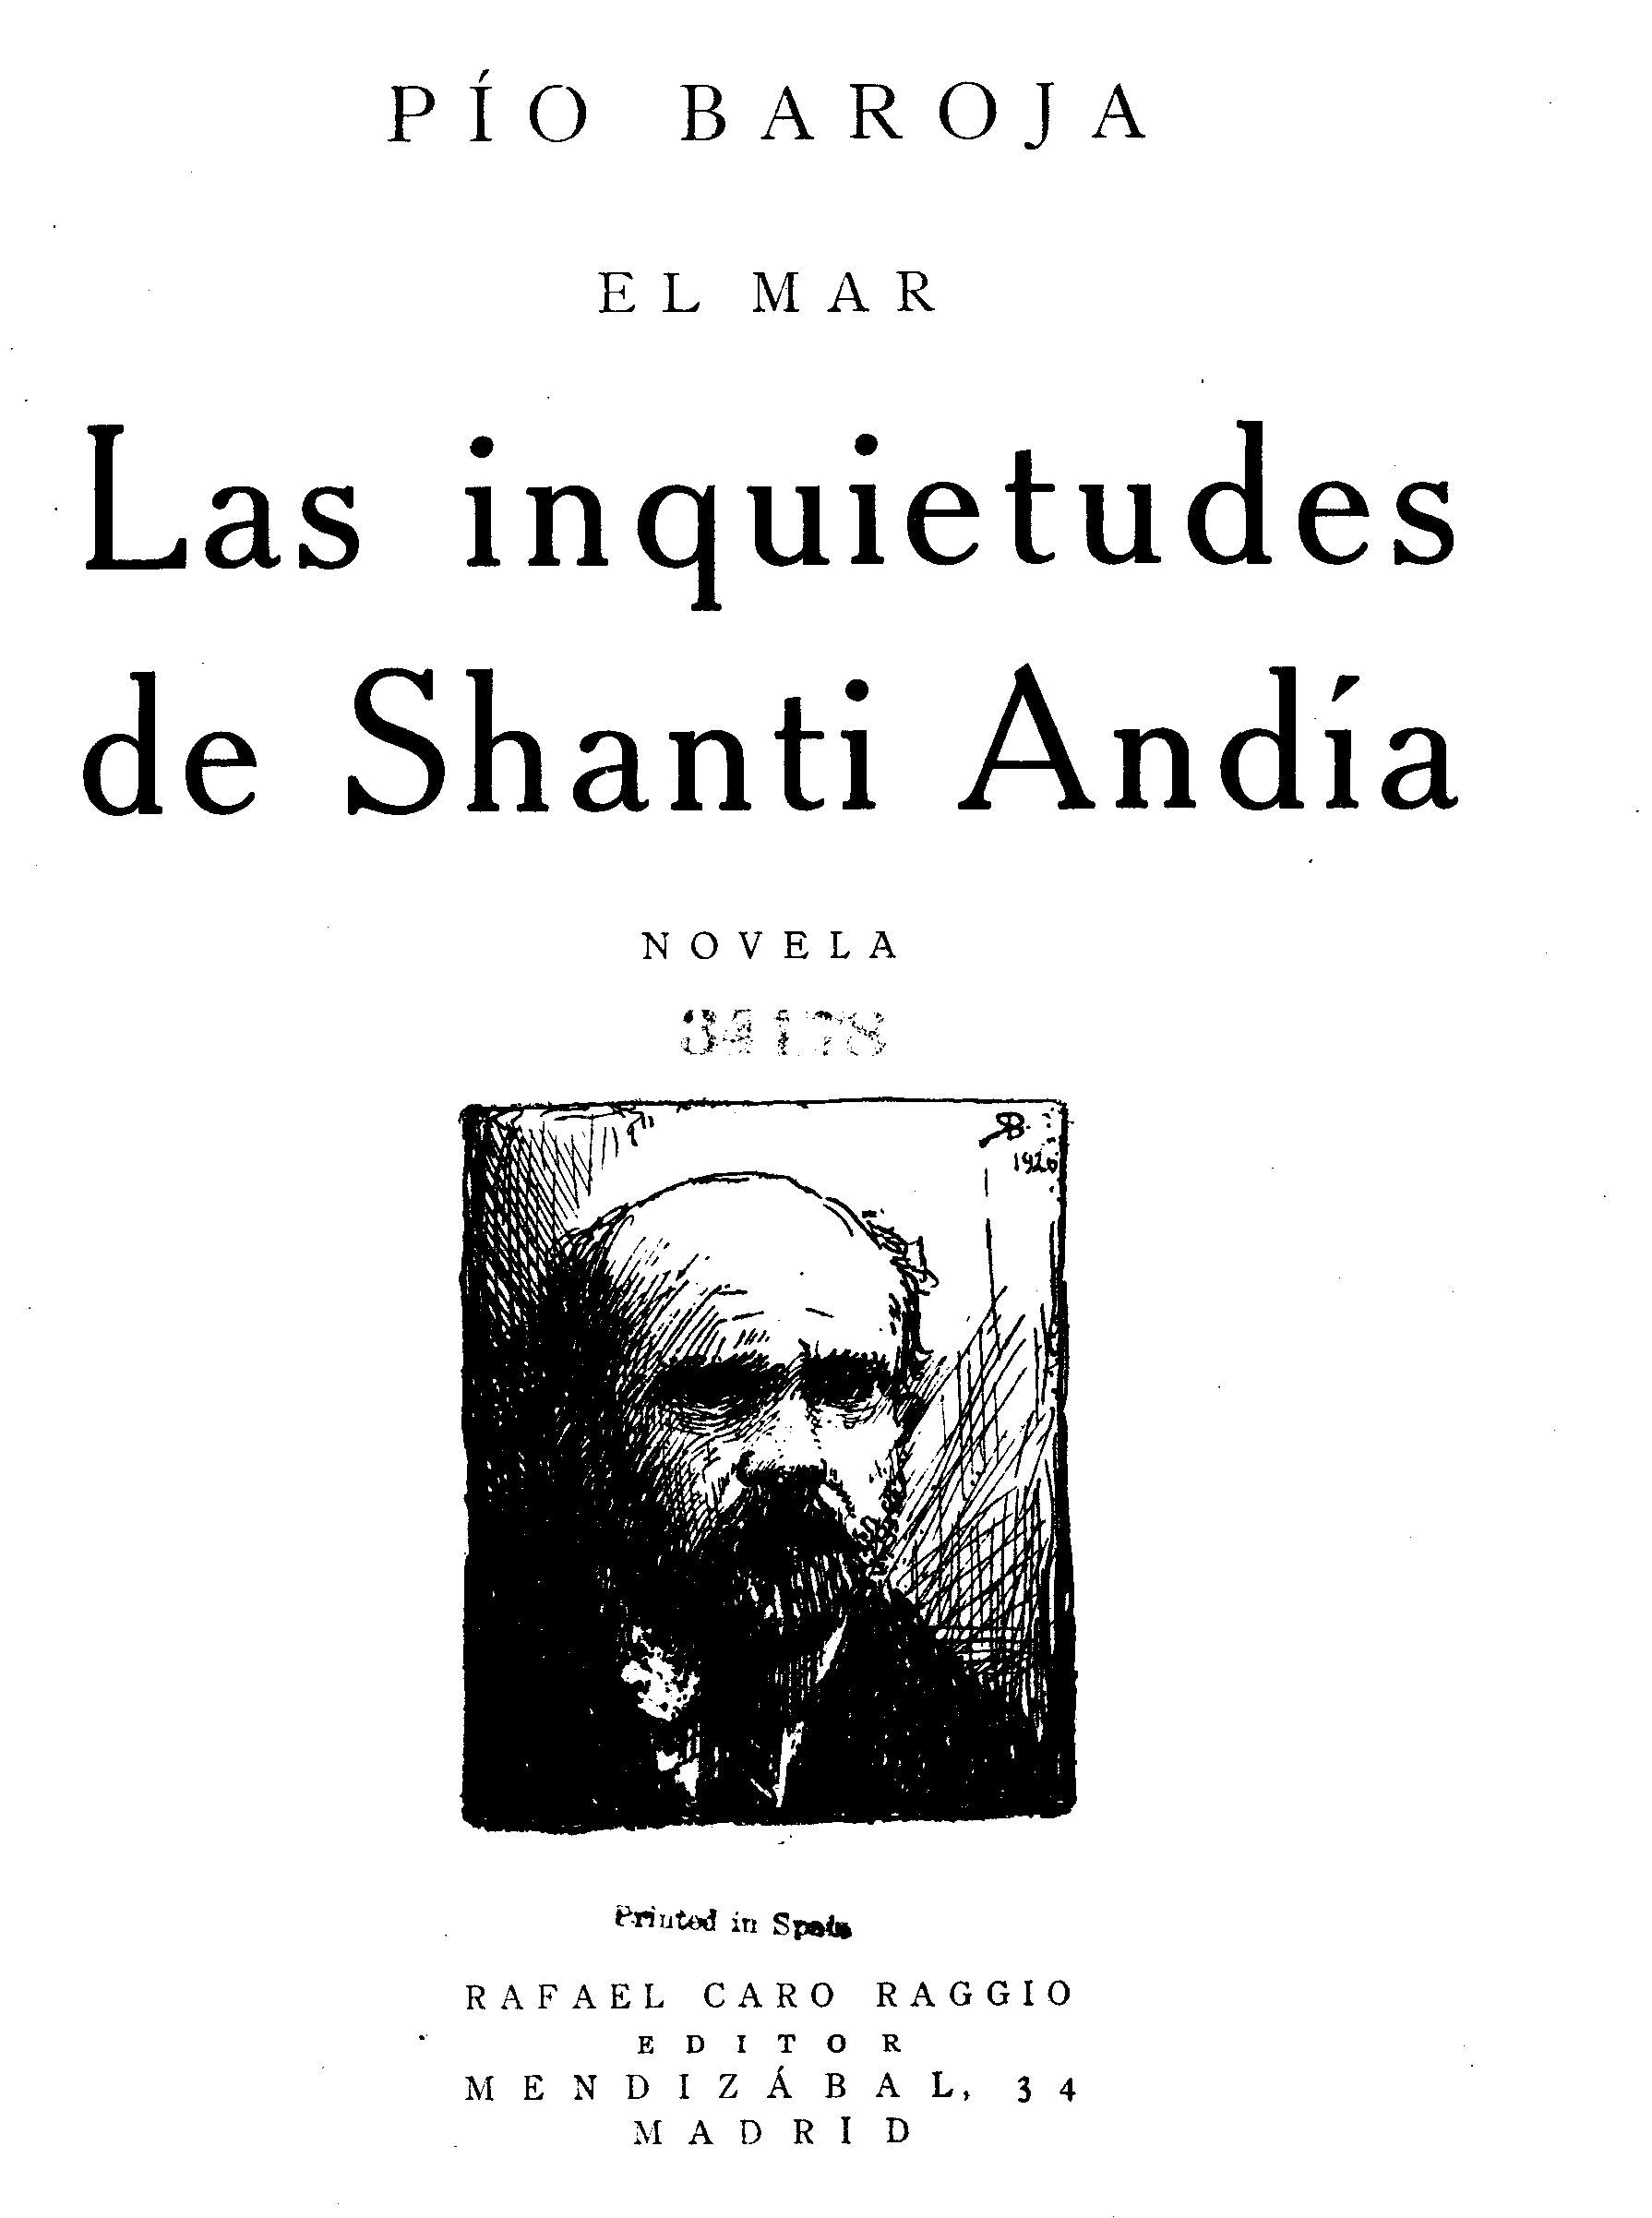 Resumen Del Libro La Busca De Pio Baroja The Project Gutenberg Ebook Of Las Inquietudes De Shanti Andía By